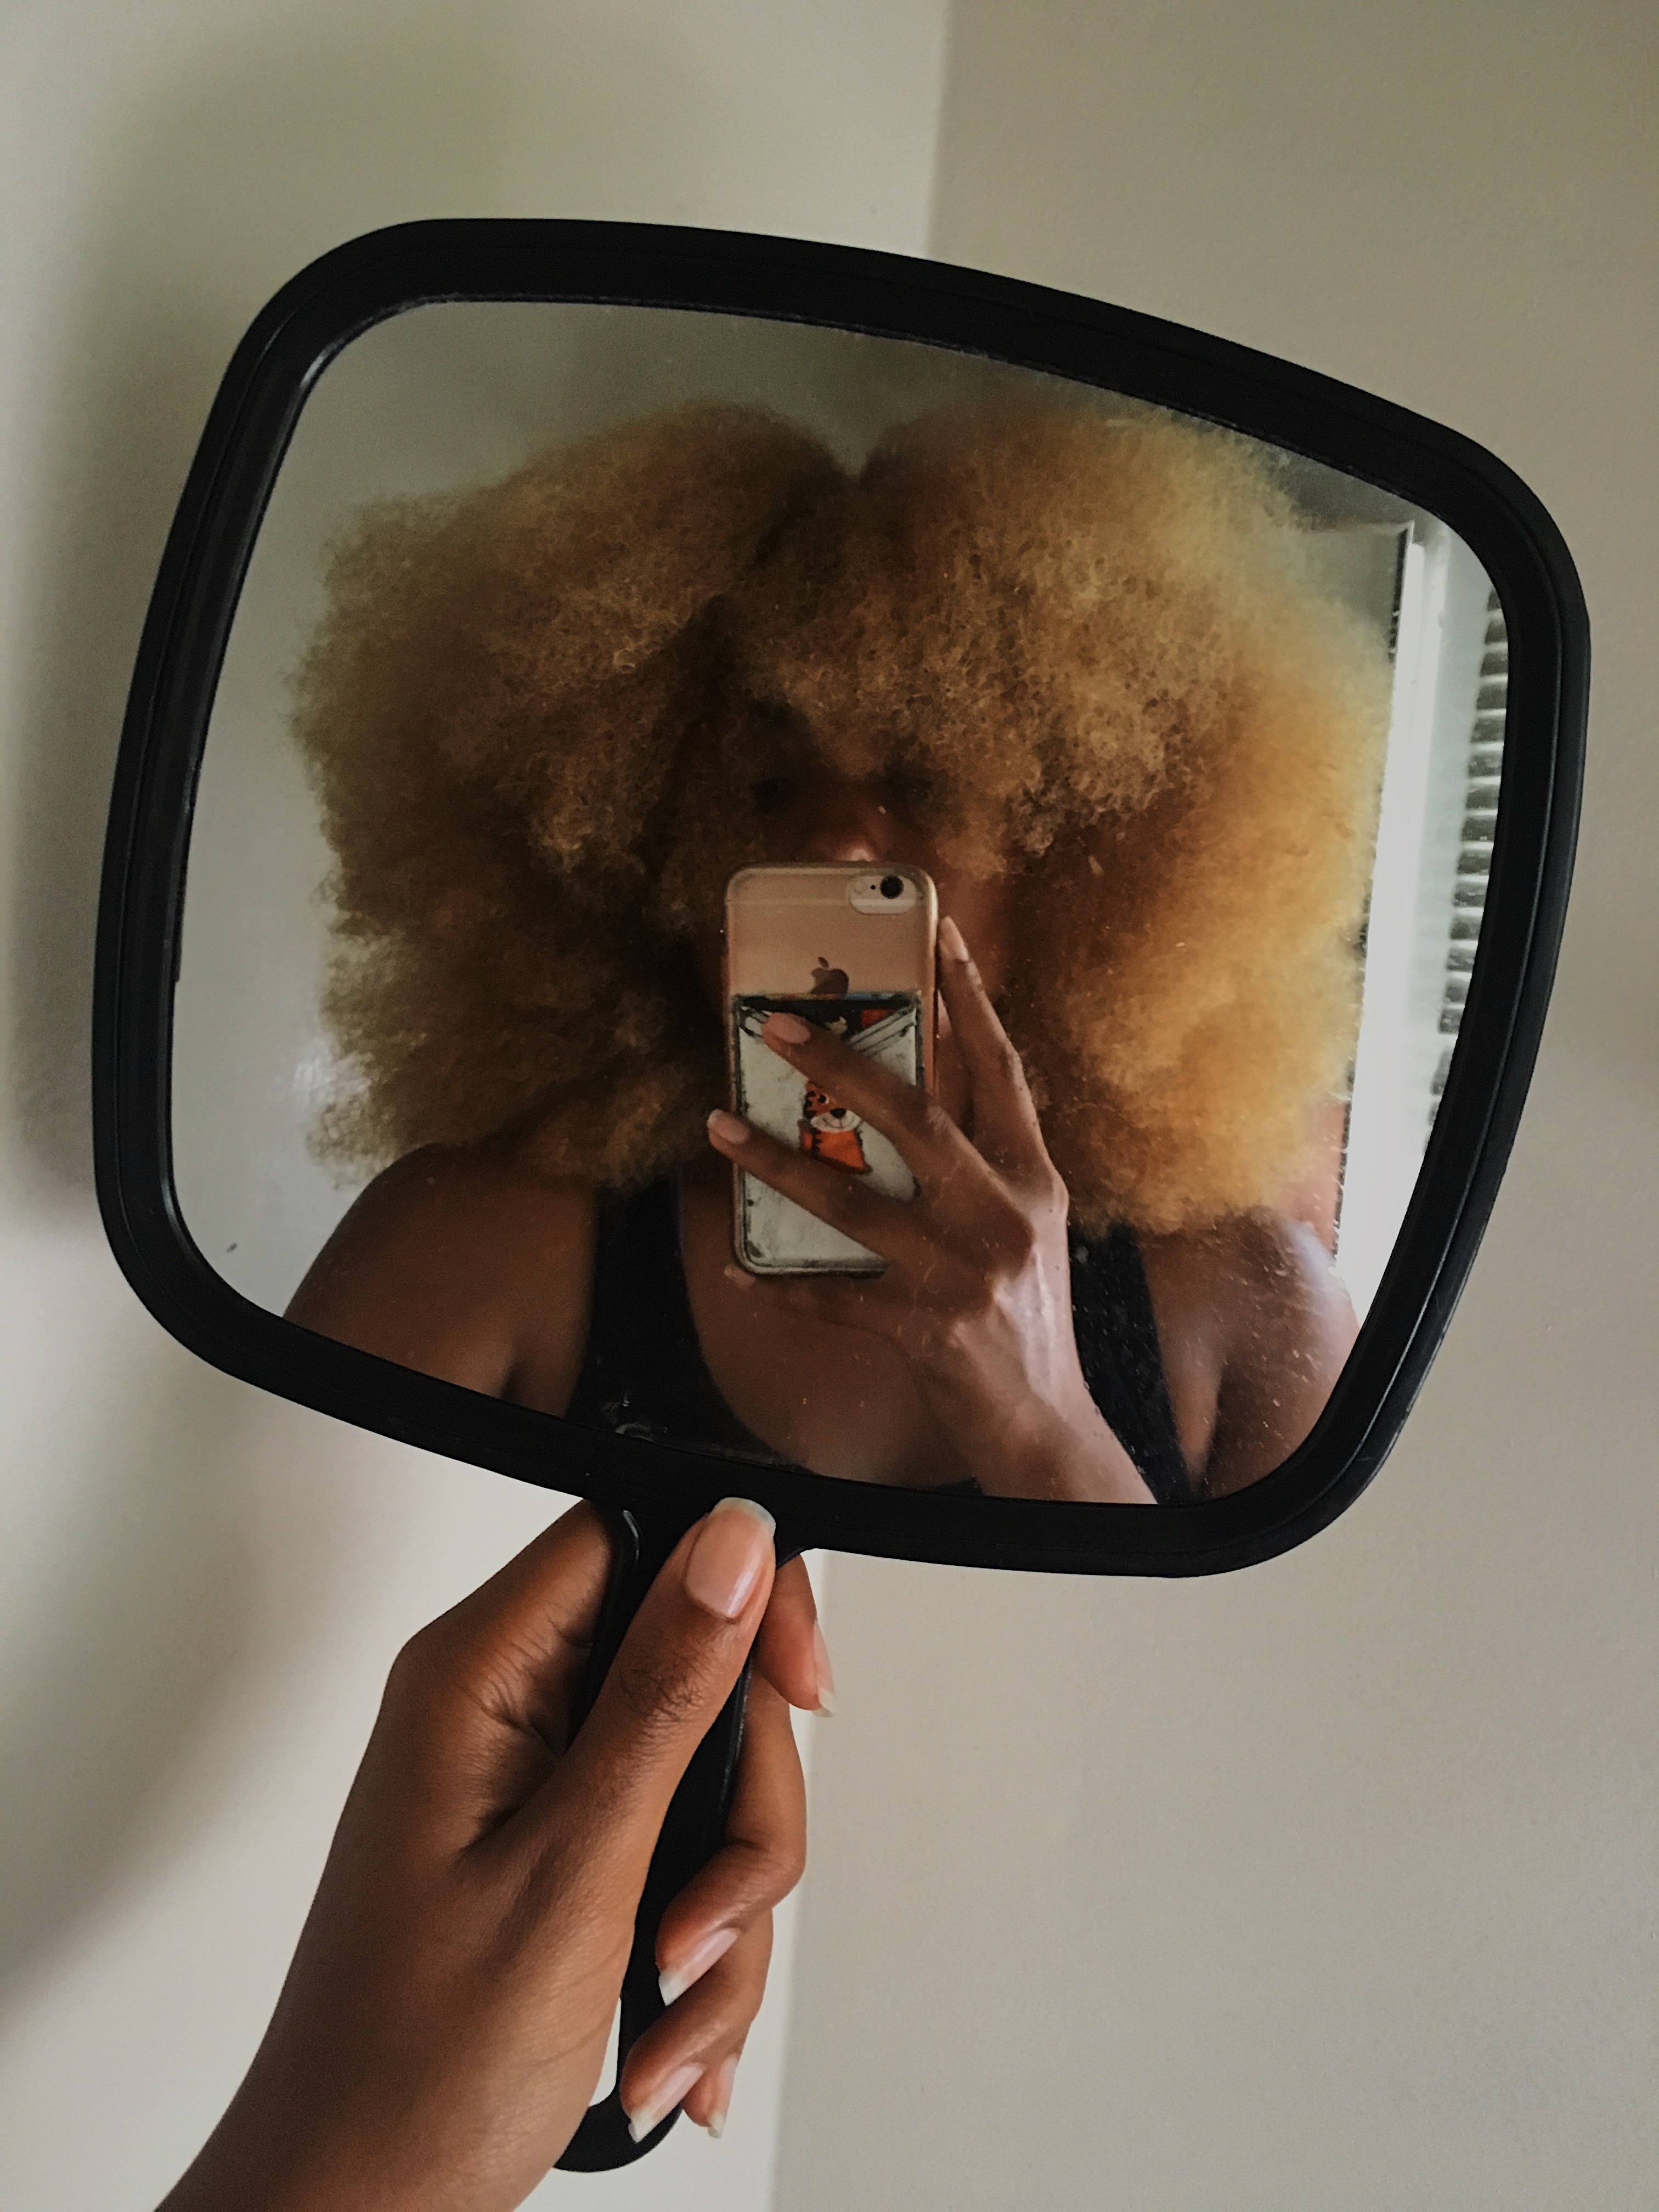 castor oil afro-mirro picture-reflection